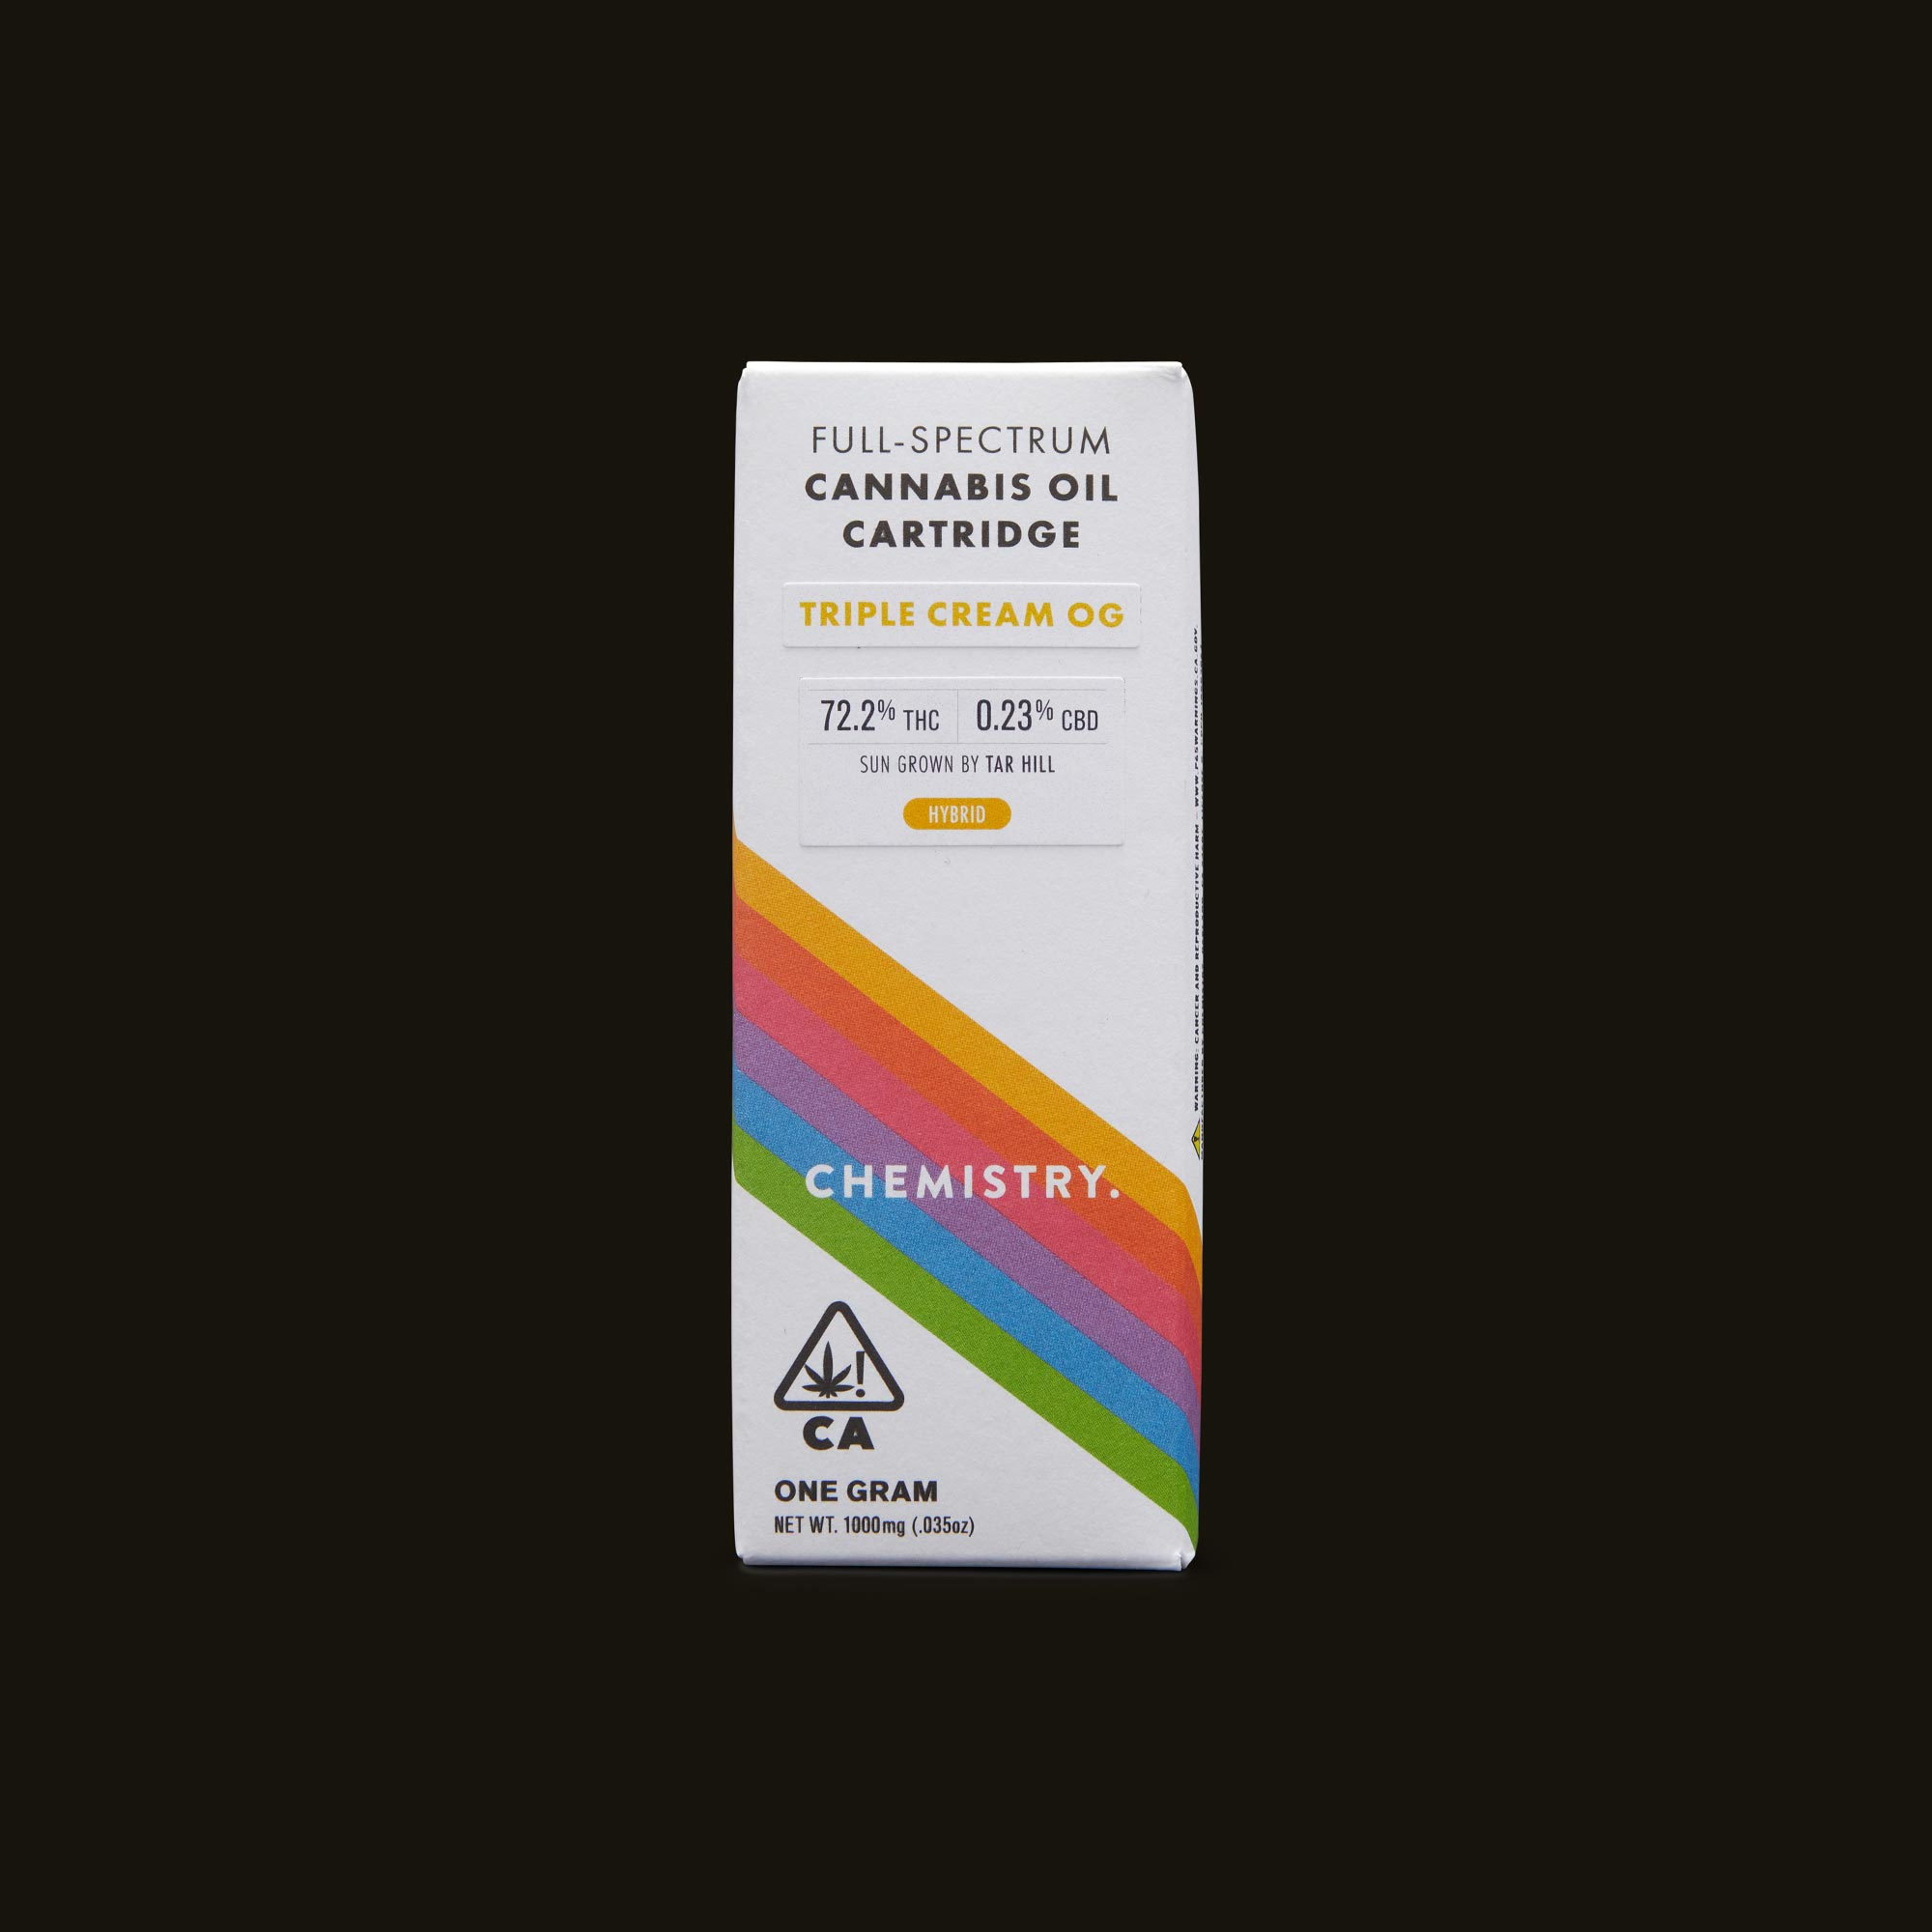 Chemistry Triple Cream OG Cartridge Front Packaging